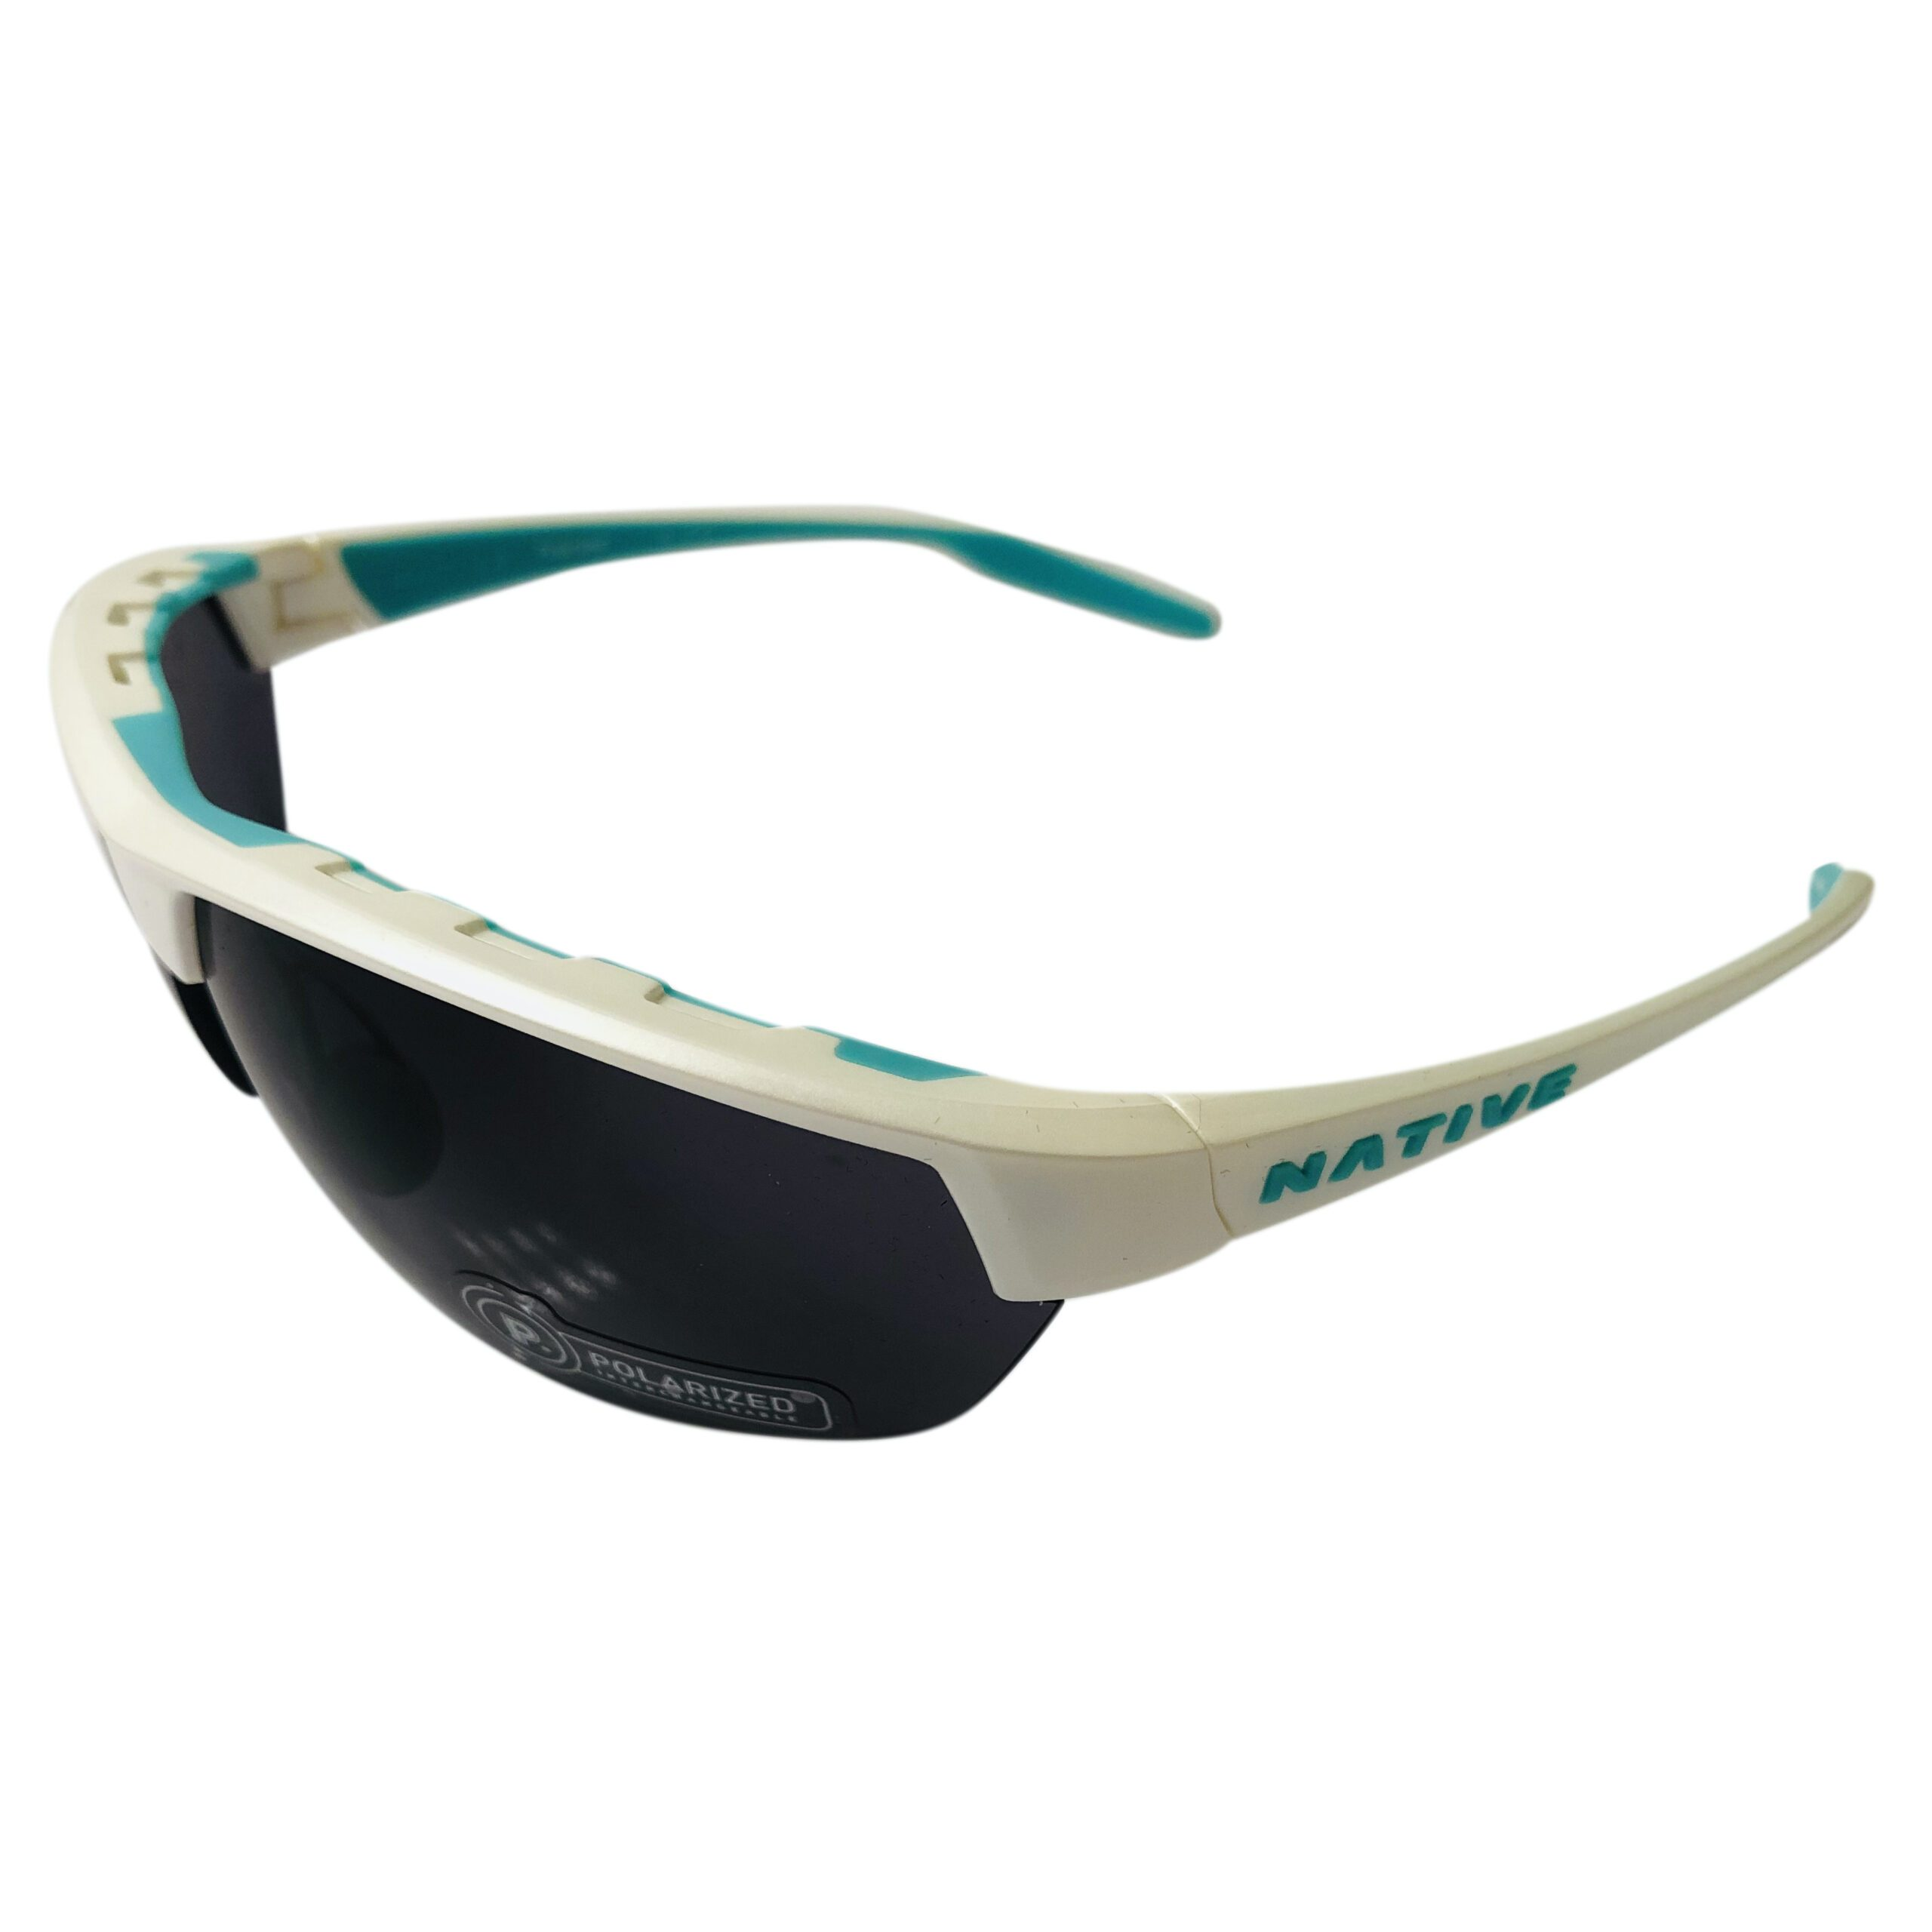 Native Eyewear Hardtop Ultra Sunglasses XTRA Lens - Pearl White POLARIZED N3 Gray